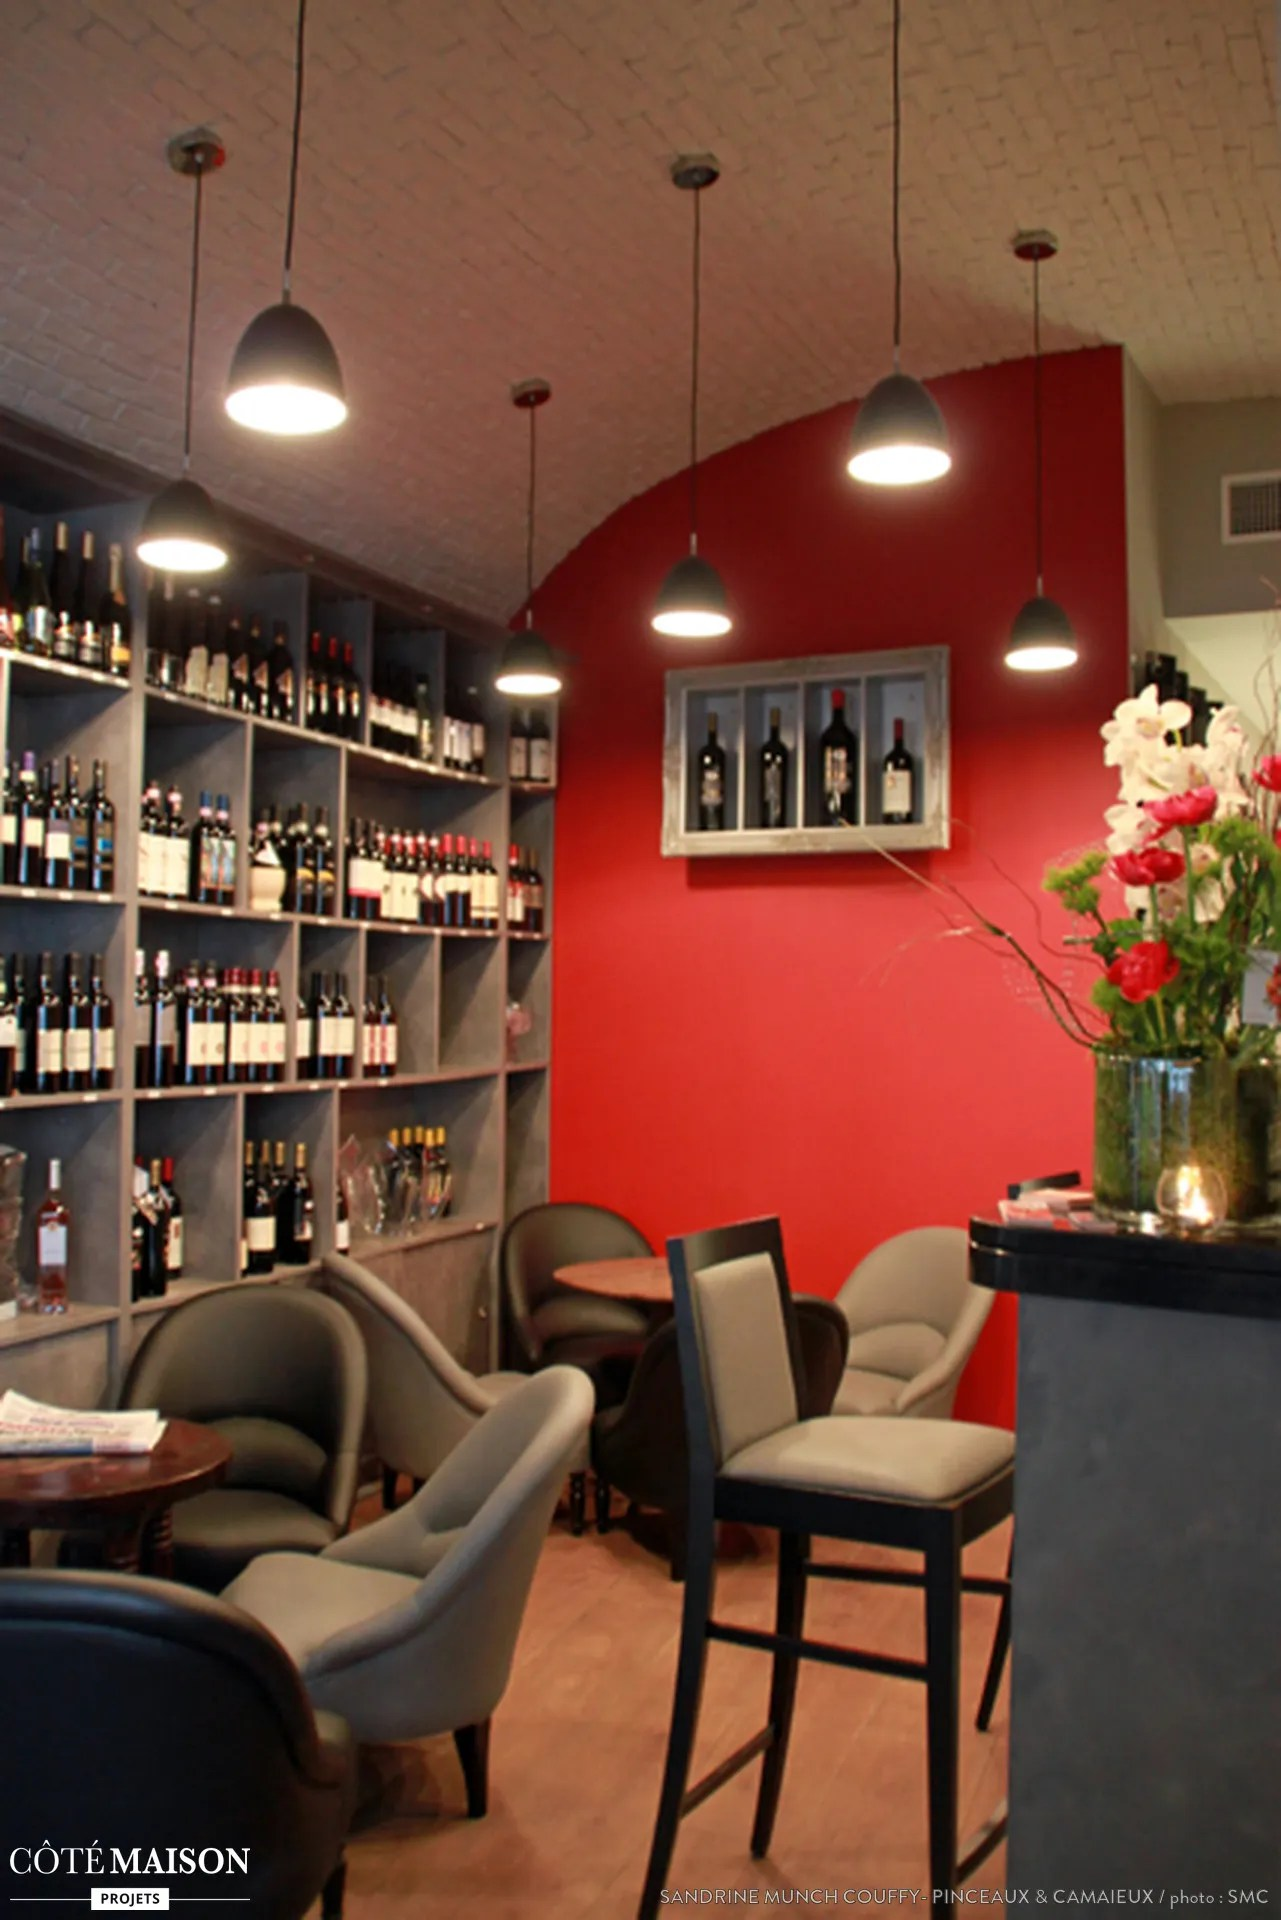 Decoration Pour Bar Maison Conception Et Décoration D 39un Bar à Vin Antibes Sandrine